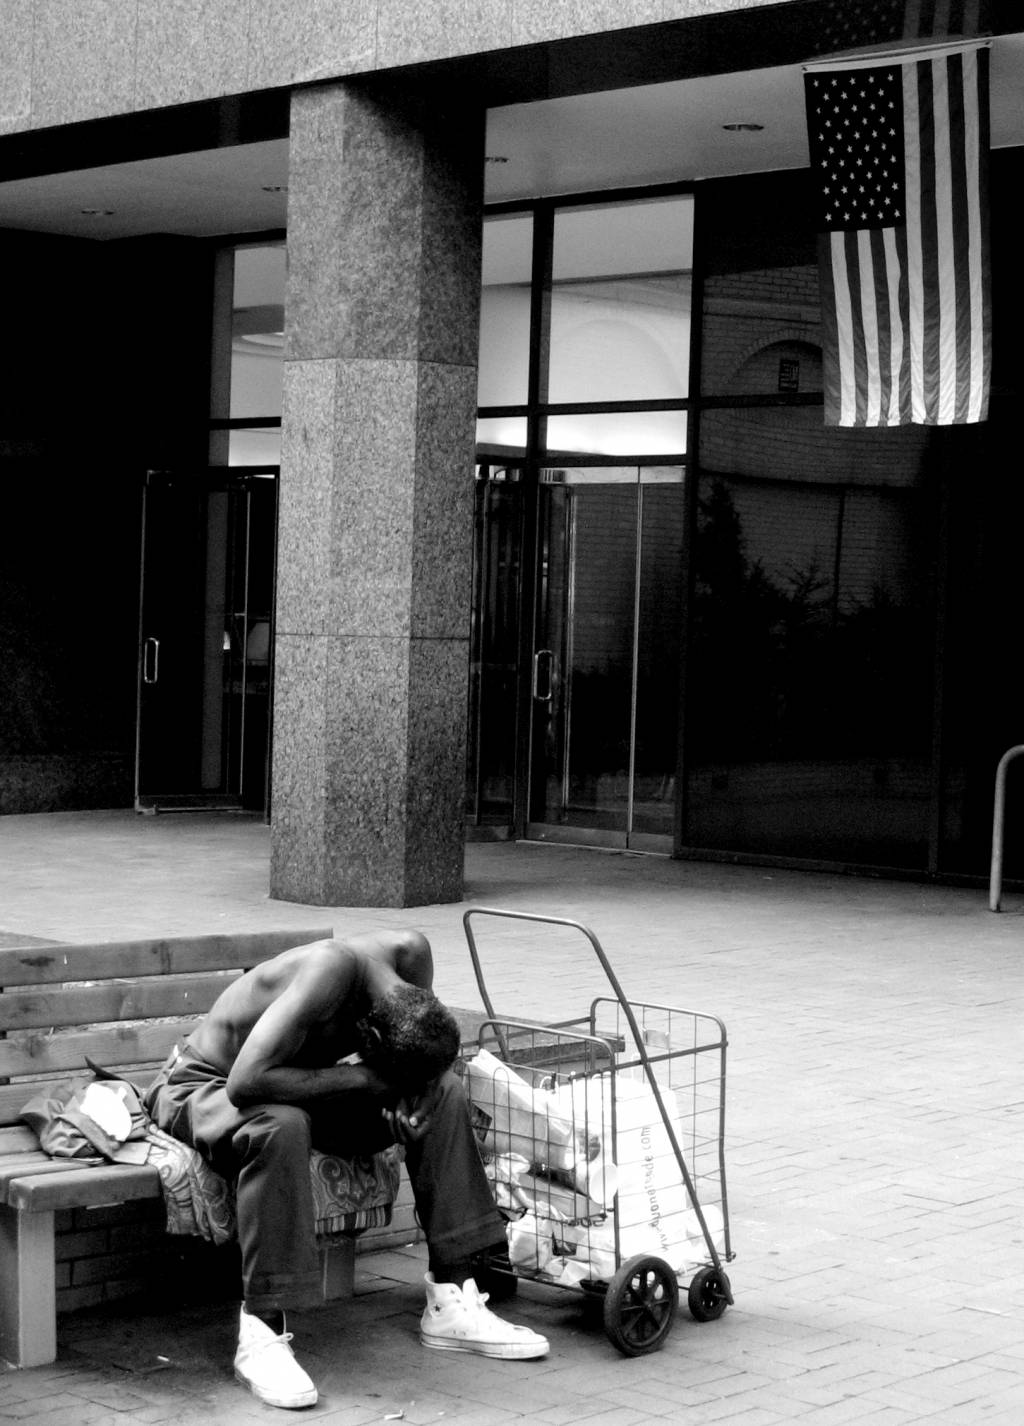 homeless essay summary Use this list of 20 essay conclusion examples that covers a range of topics and essay formats as a stepping stone to inspire and inform your own writing  passing by a homeless person is.